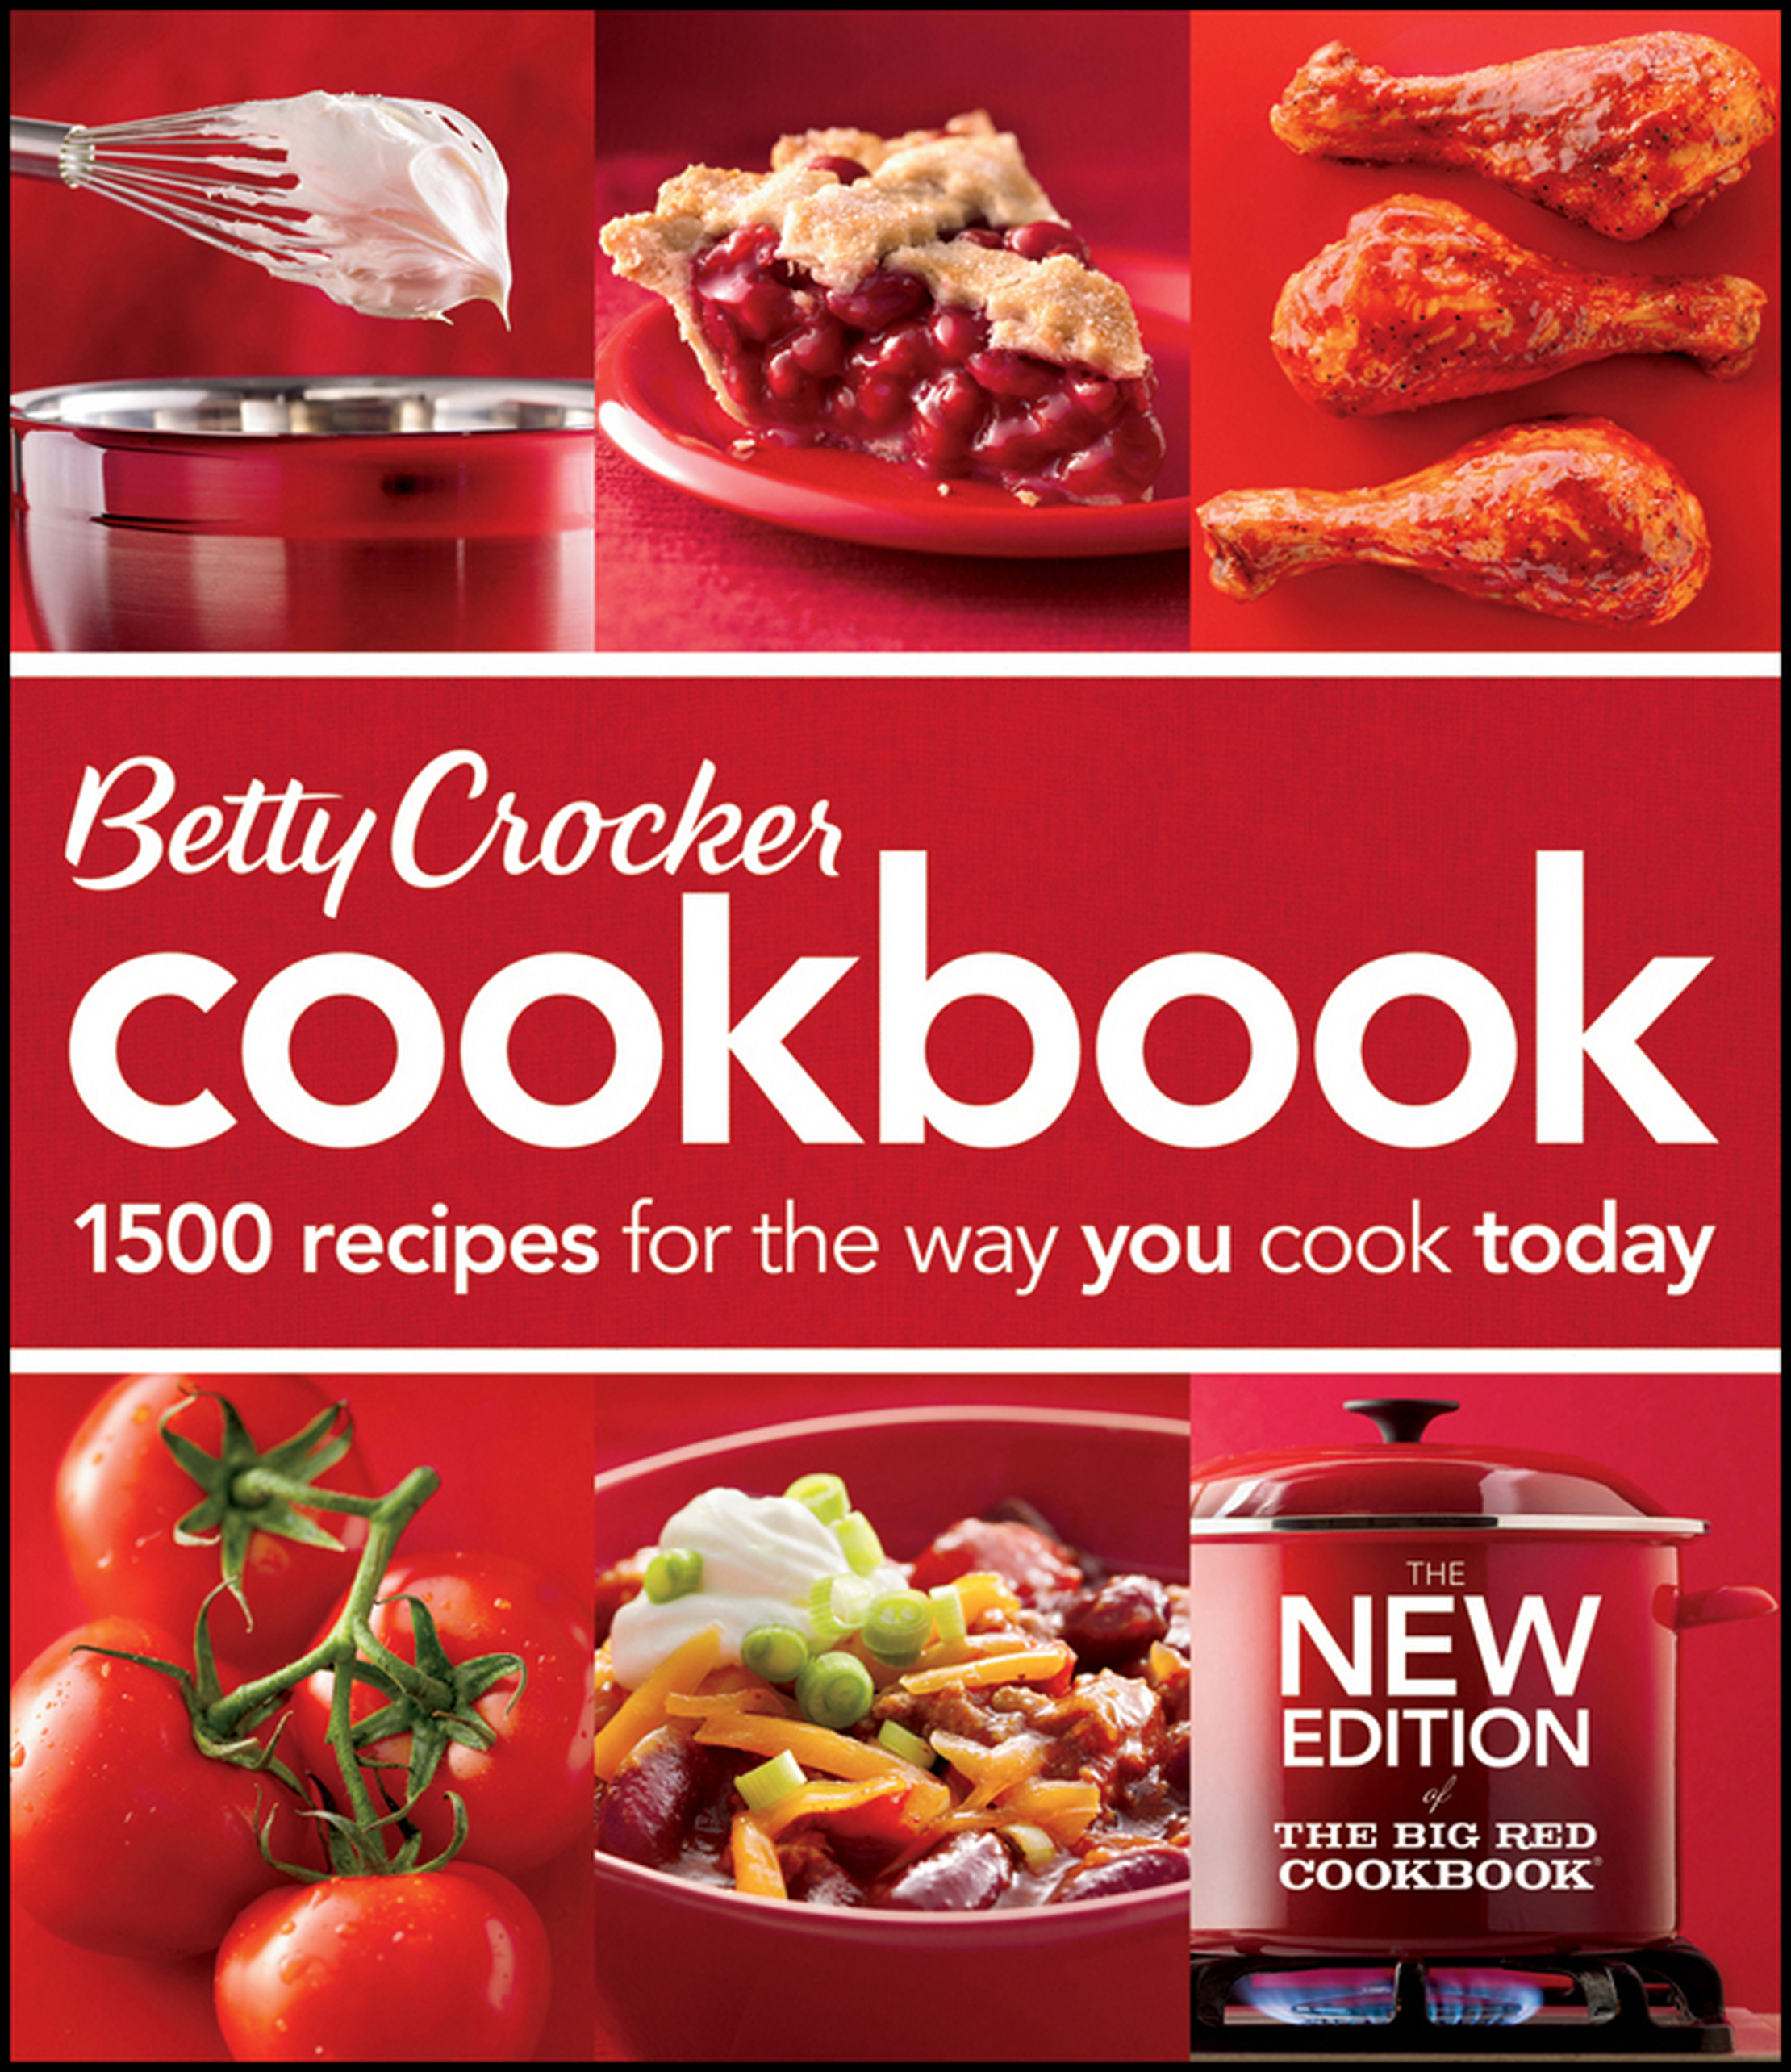 Betty Crocker Cookbook, 11th Edition 1500 Recipes for the Way You Cook Today